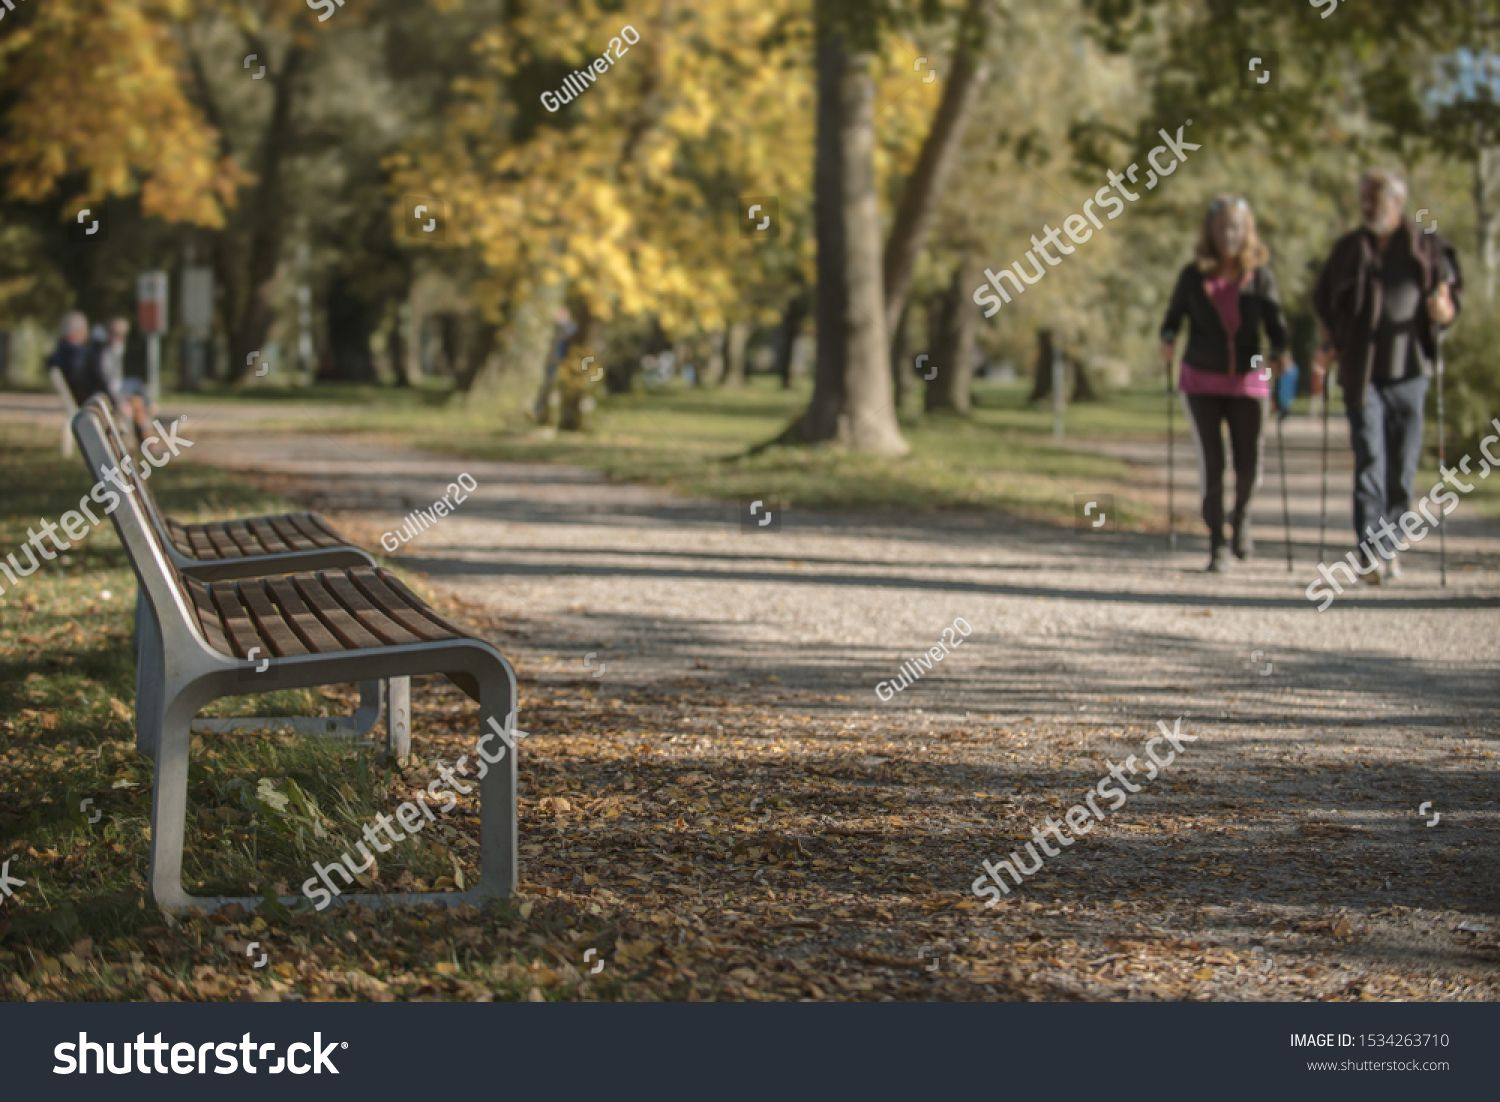 Park in autumn wit two people and walking sticks #Ad , #AFF, #wit#autumn#Park#sticks